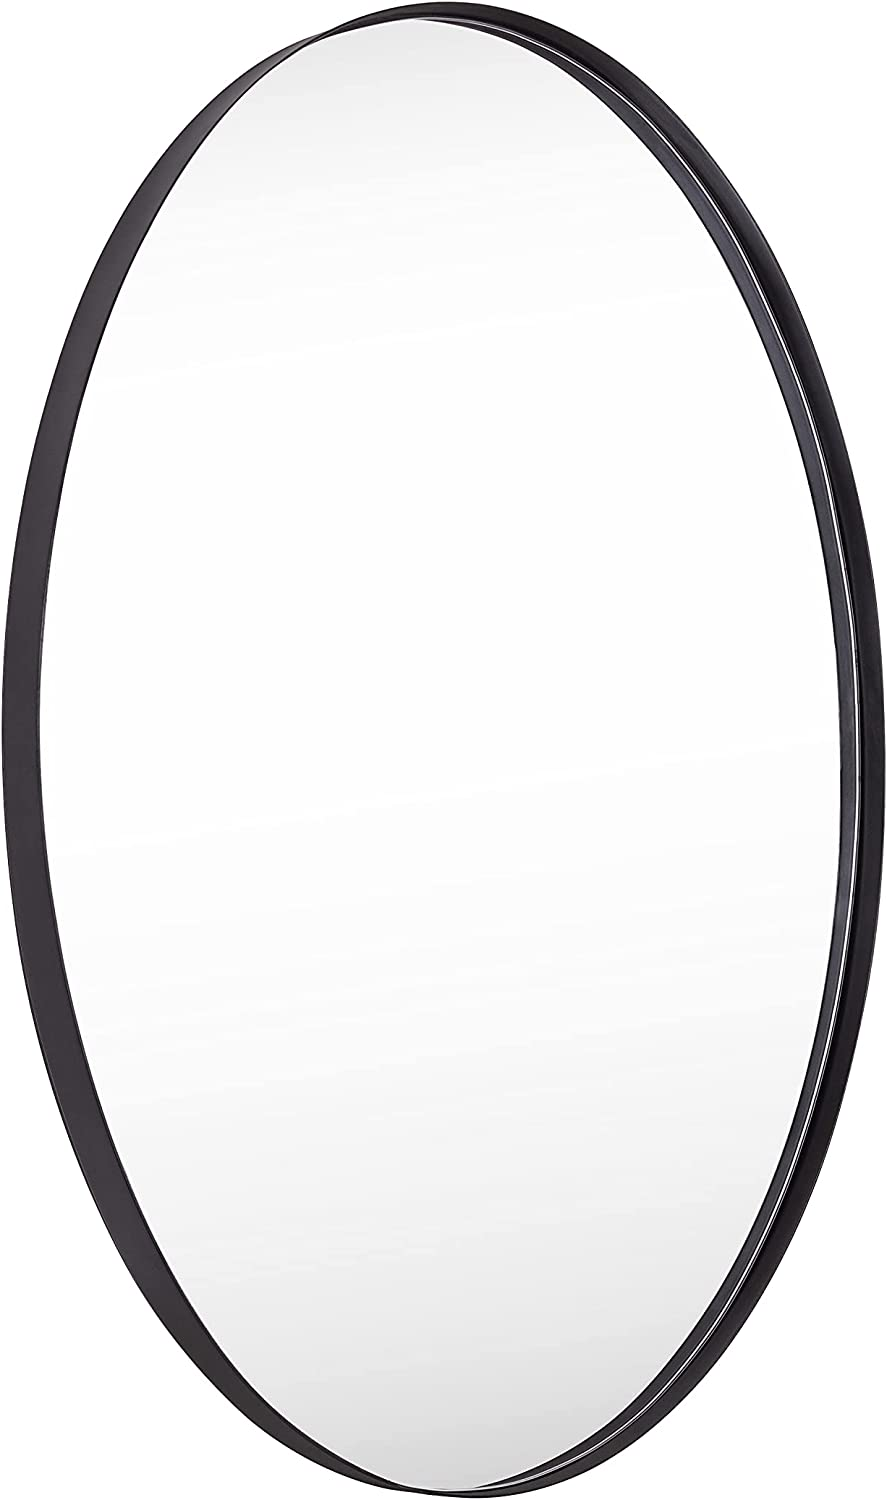 Clavie Oval All items in the store Mirror Memphis Mall for Wall Stainless Bathroo 36 Steel Inch 24 x